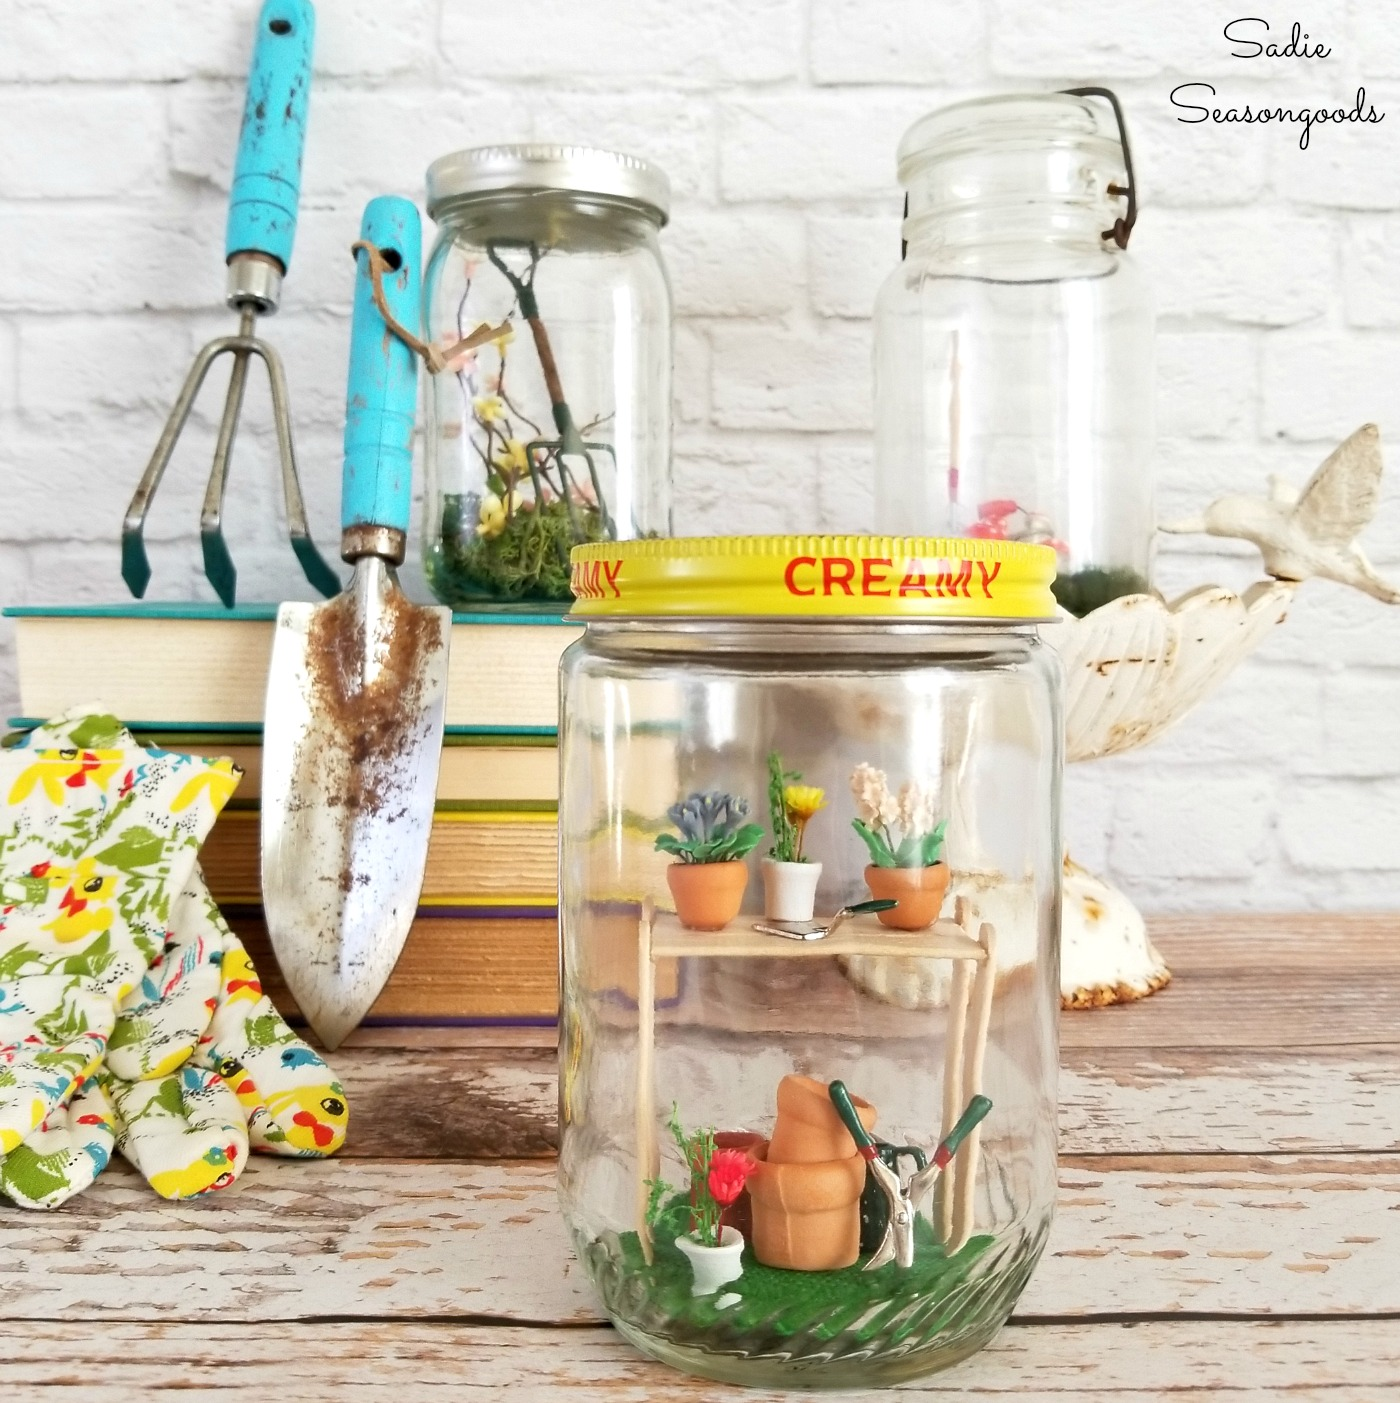 Spring Garden Scenes inside Pickle Jars or Vintage Jars